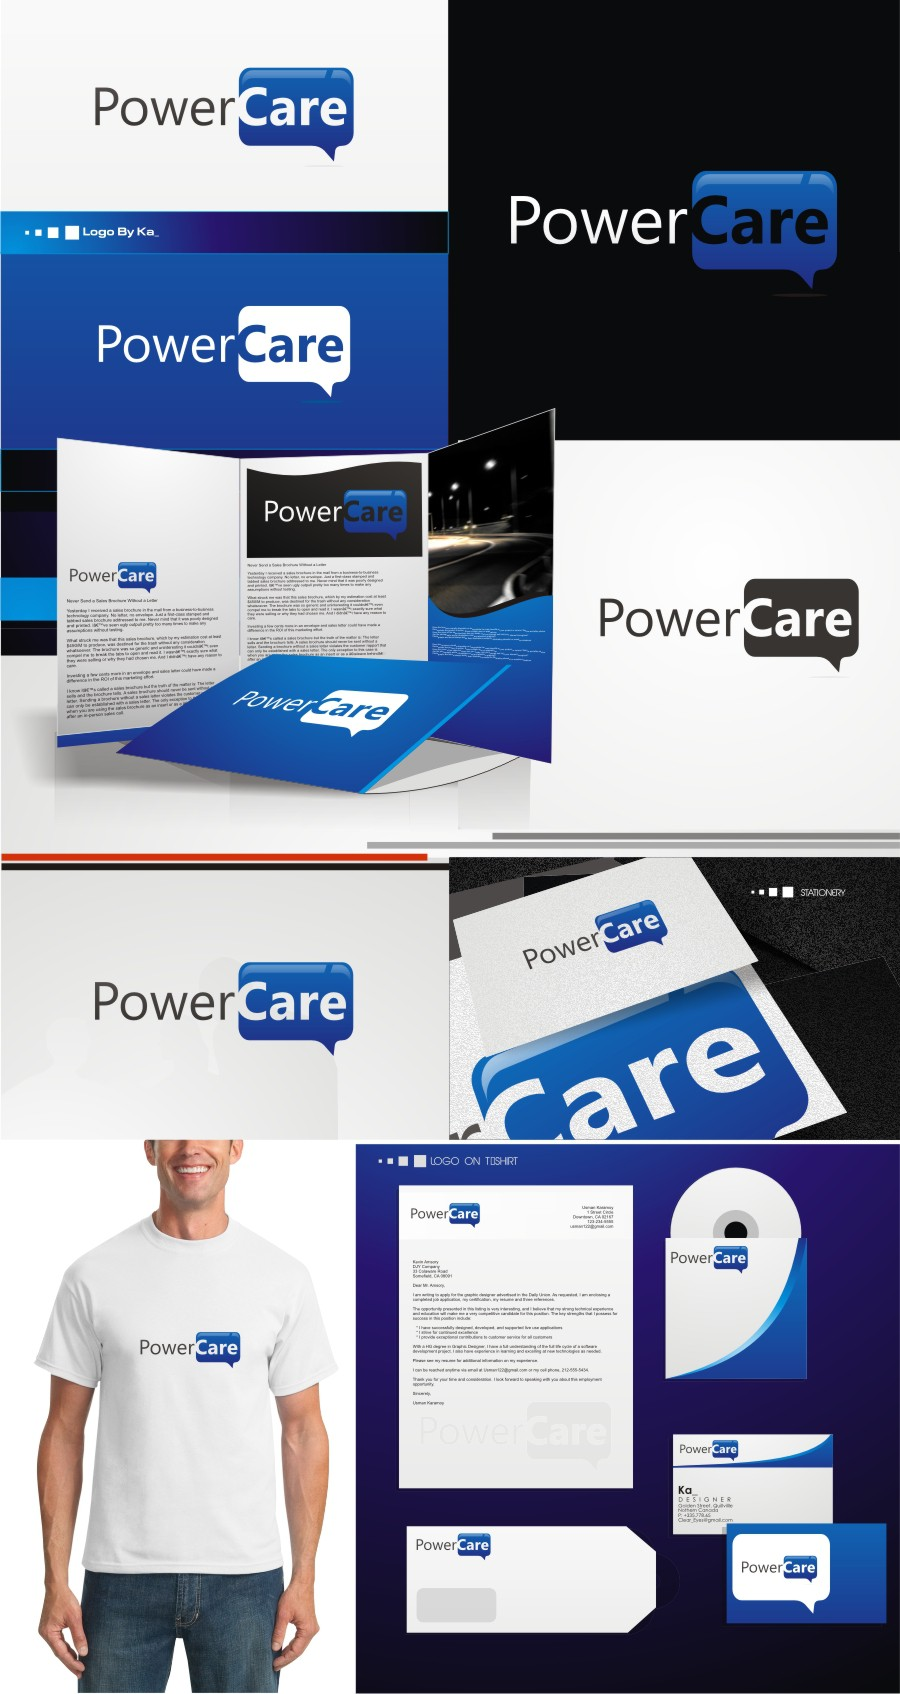 Help PowerCare with a new logo